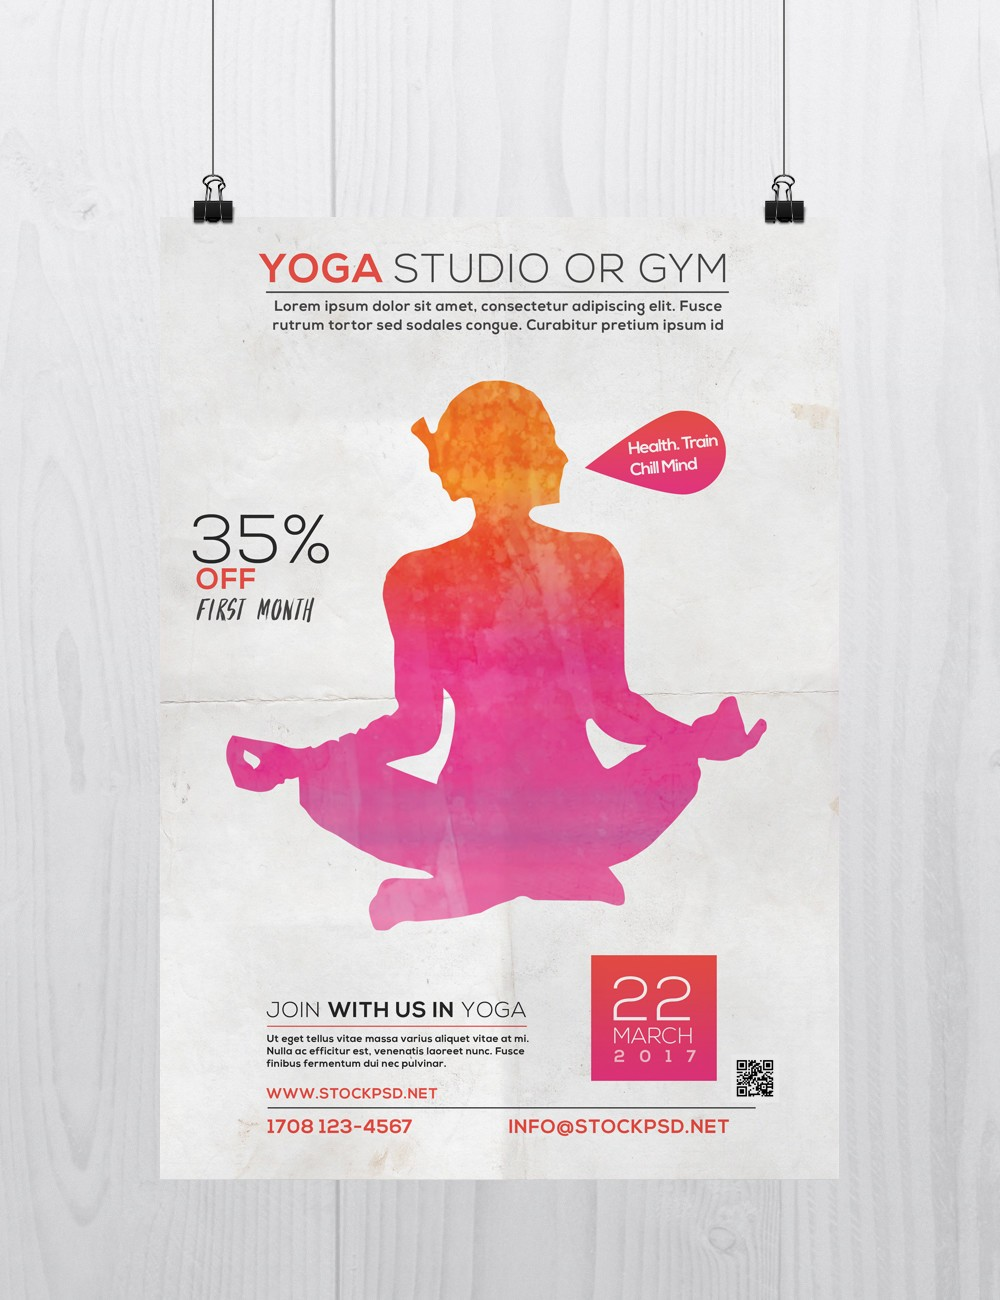 Yoga Studio Free Psd Flyer Template Stockpsd